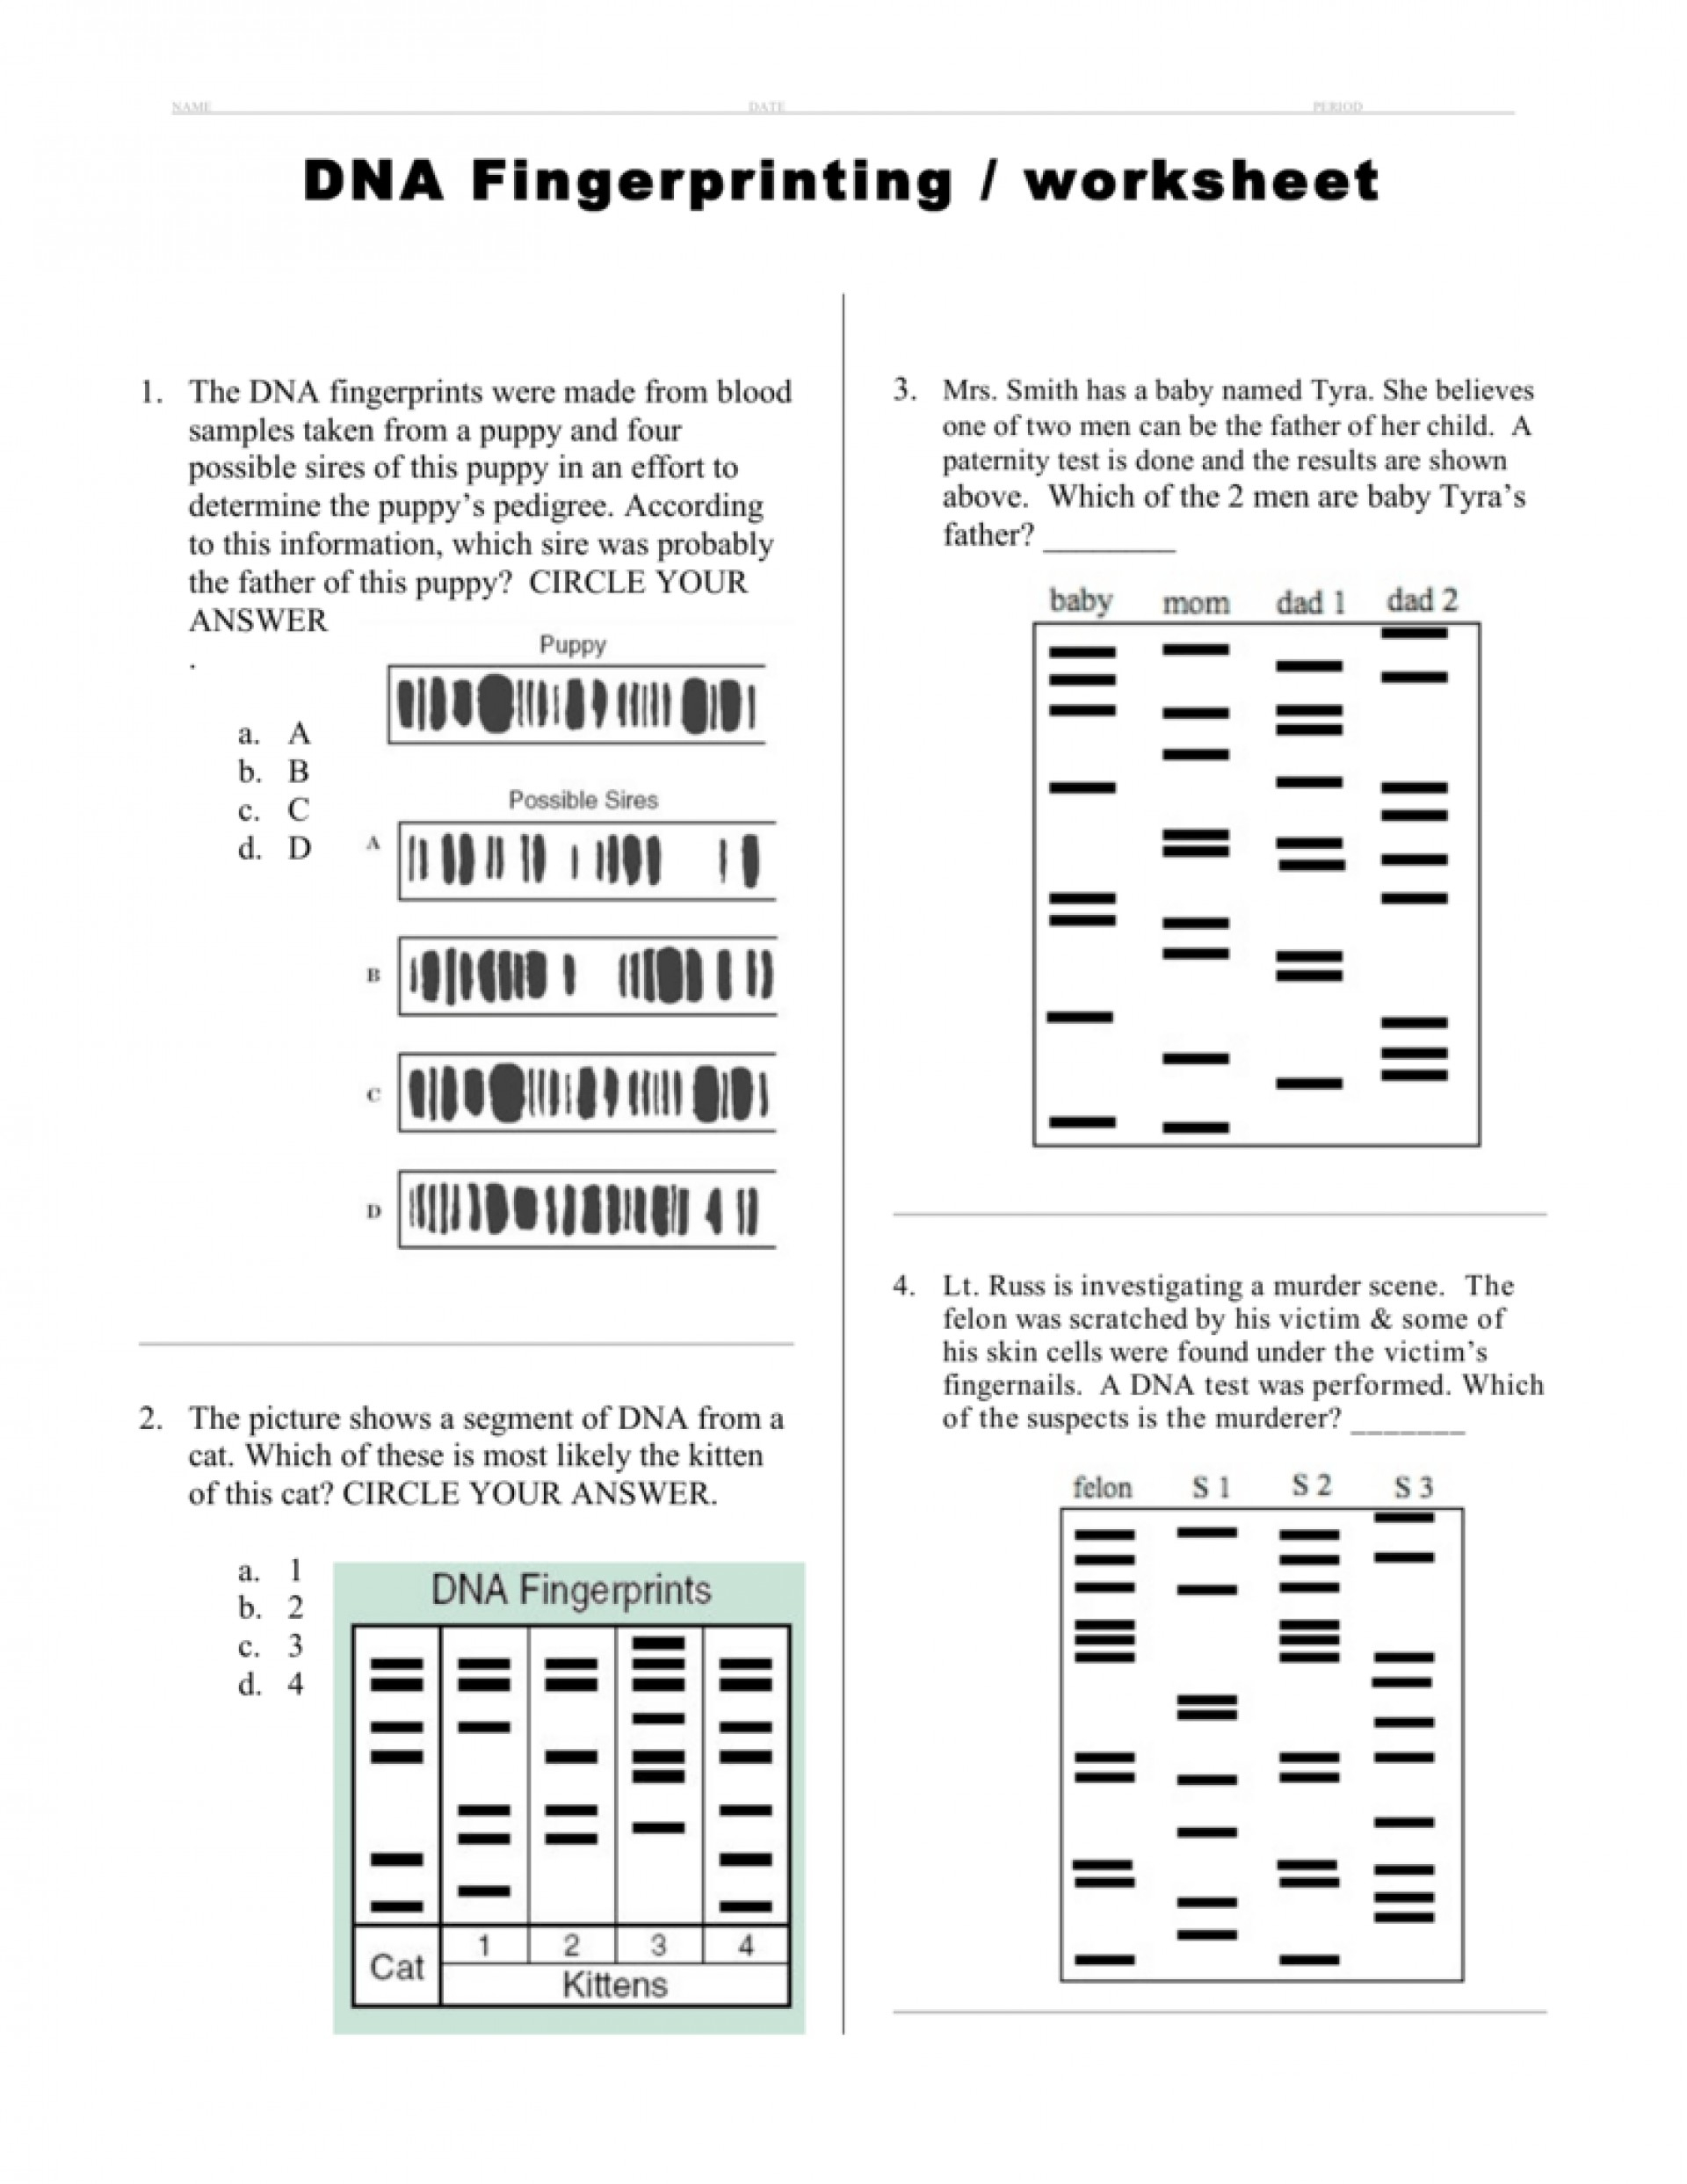 008 Essay On Dna Fingerprinting 008678379 1  Thatsnotus As Well As Dna Fingerprinting And Paternity Worksheet Answer Key